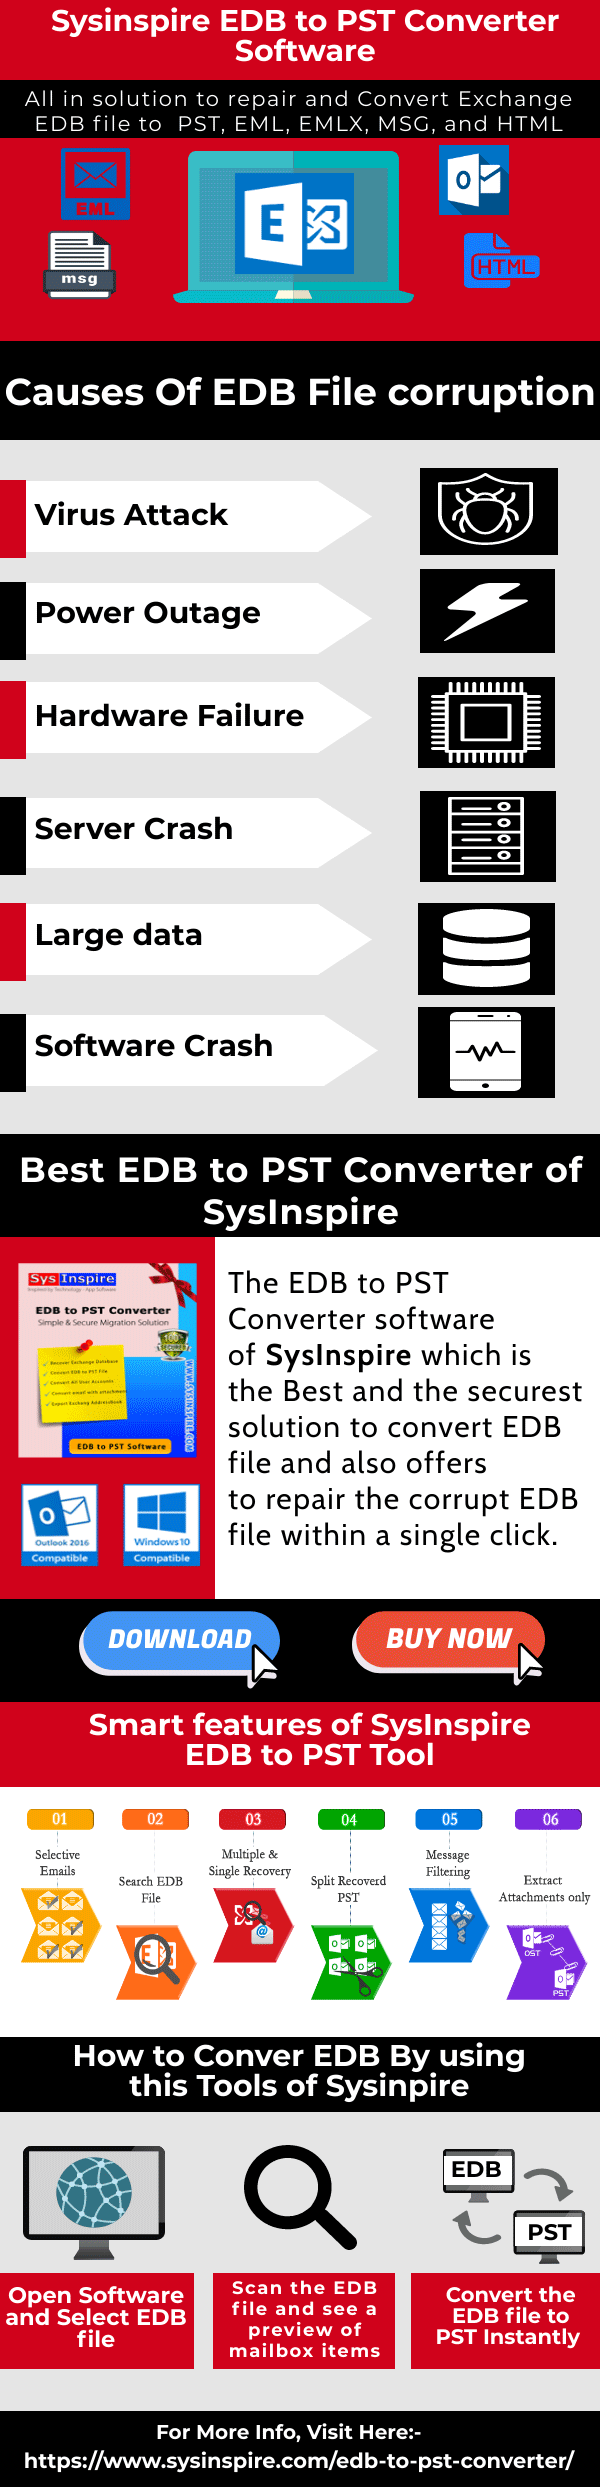 https://www.sysinspire.com/infographics/edb/sys-edb-to-pst.png